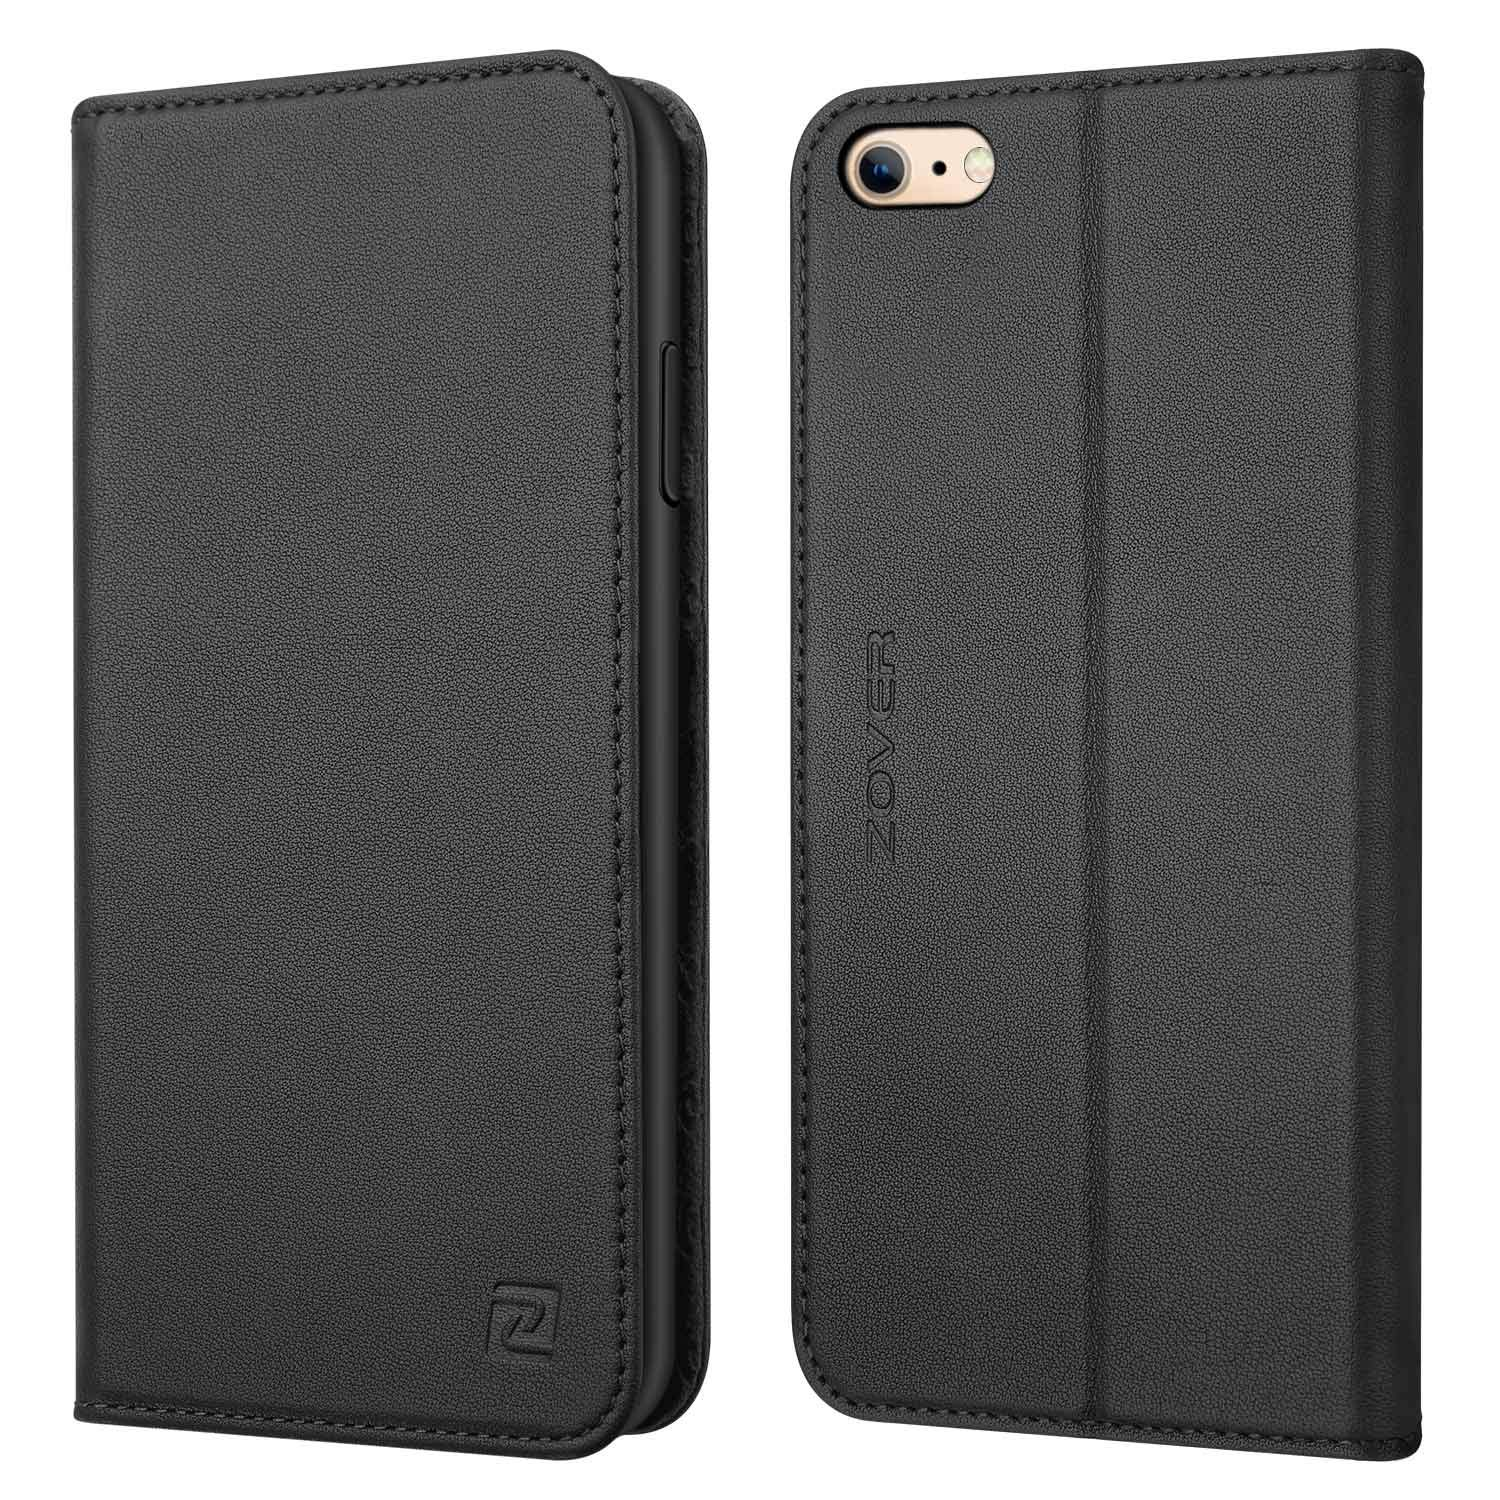 iPhone 6S Wallet Case iPhone 6 Wallet case ZOVER Genuine Leather Flip Folio Book Case with Kickstand Feature Card Slots & ID Holder and Magnetic Closure for iPhone 6 and iPhone 6S Brown iPhone 6/6S Leather-Brown-New